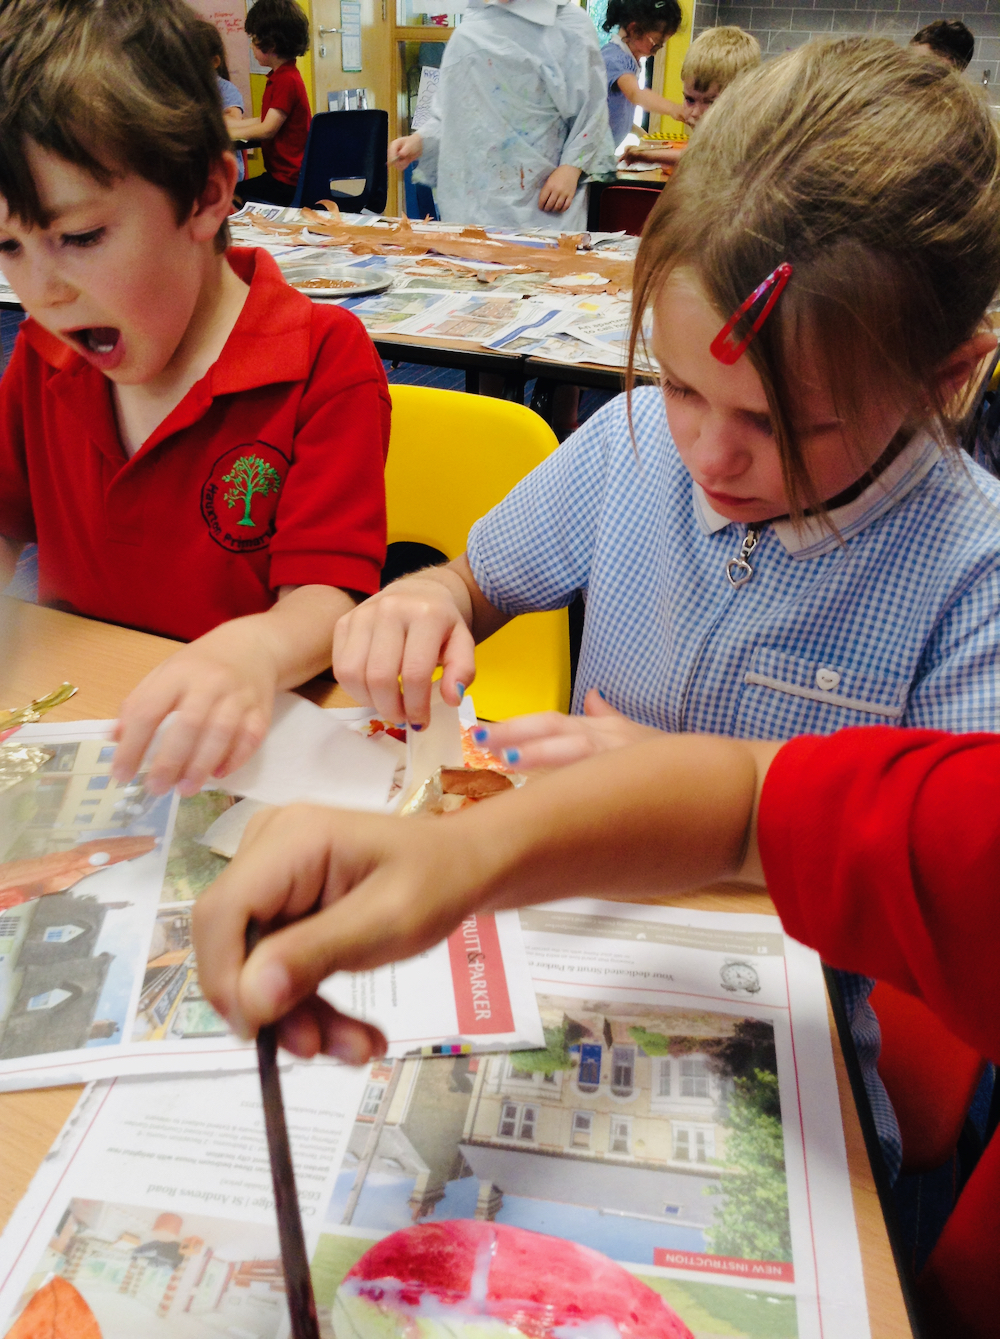 Children apply gold leaf to gild their painted leaves at Hauxton Primary School with Pamela Stewart for Inspire